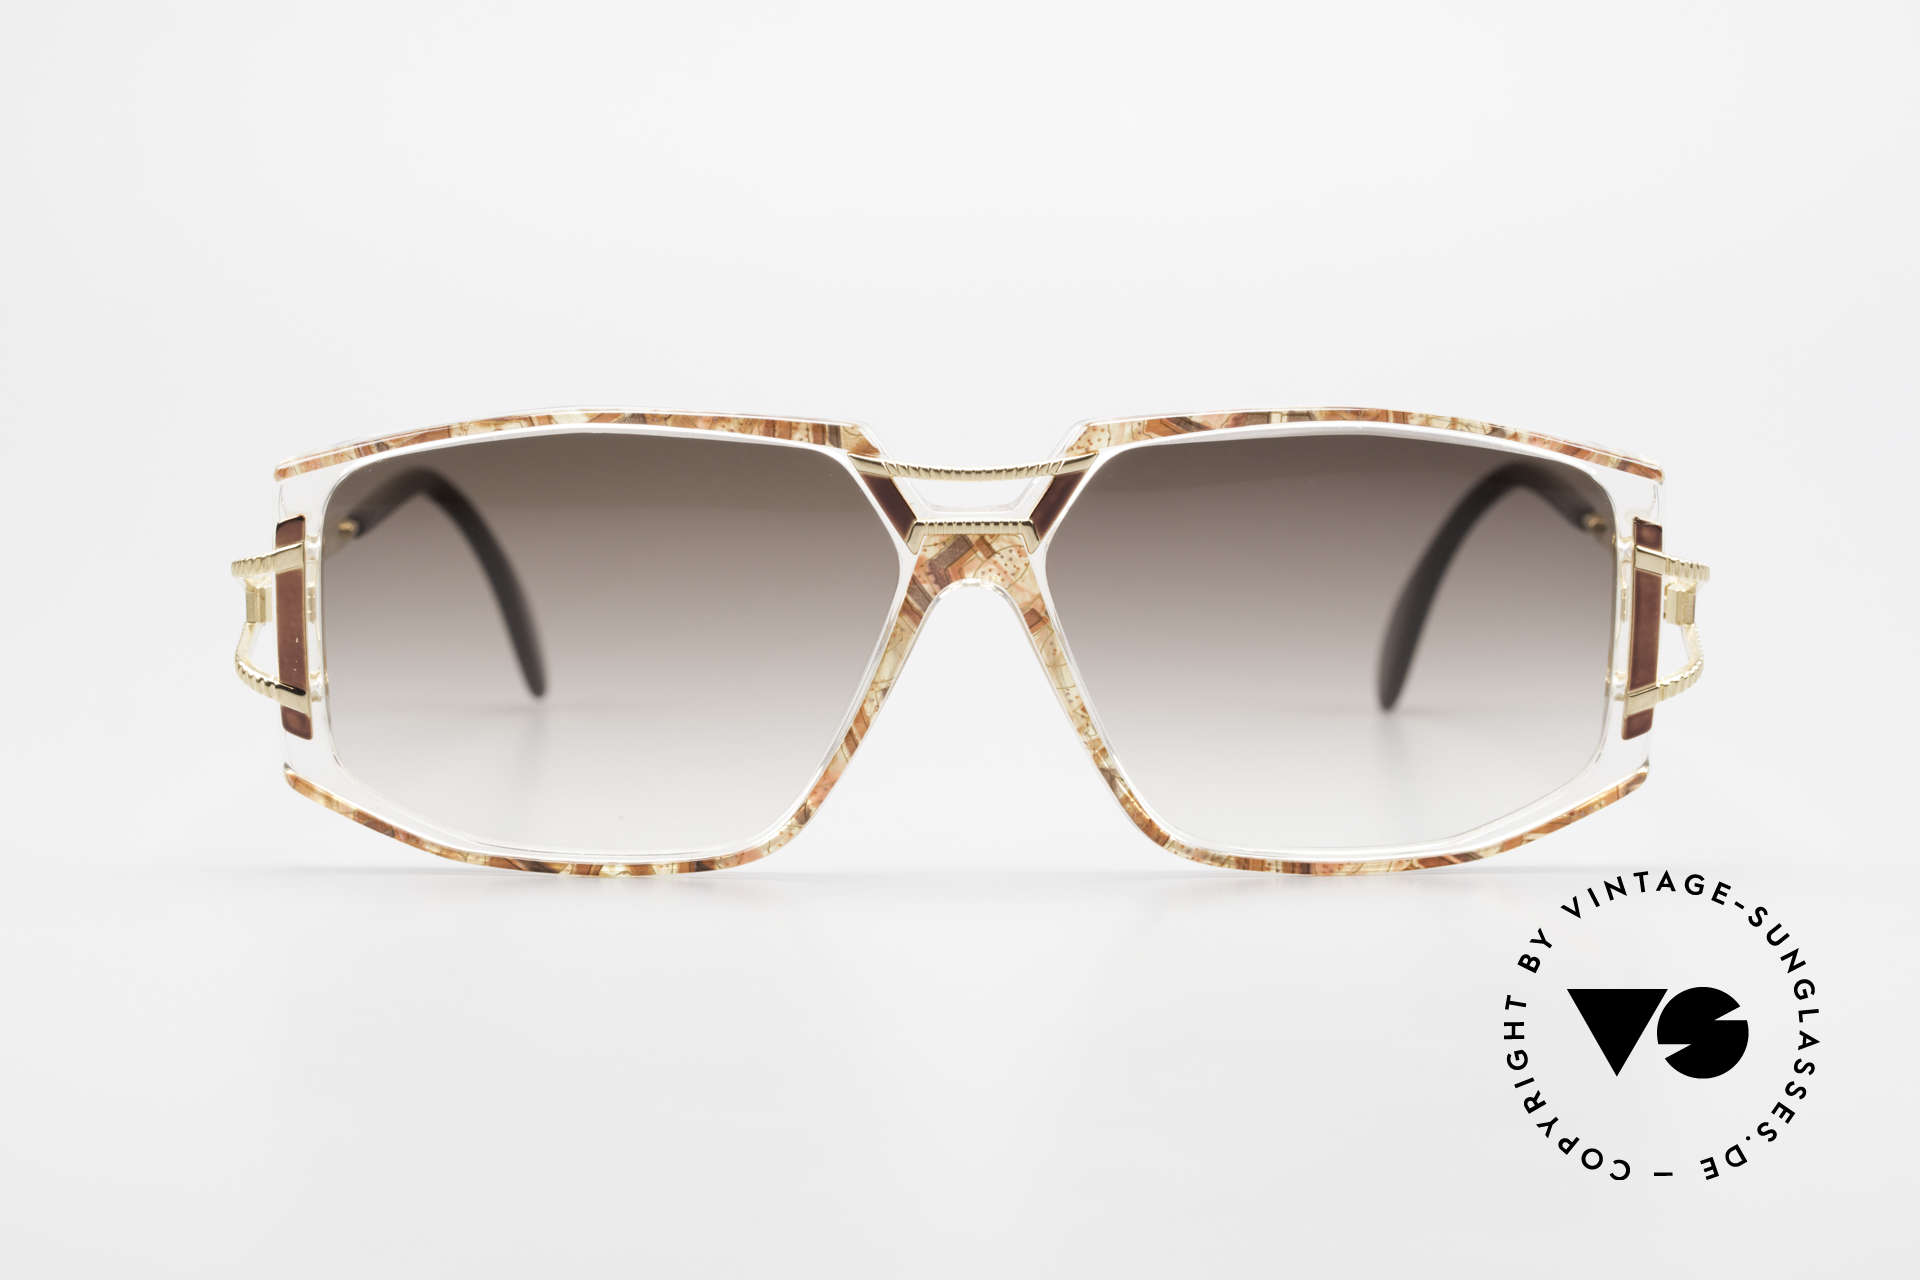 Cazal 362 Ladies Sunglasses 90's Cazal, exciting ornamental piece on bridge and temple hinges, Made for Women